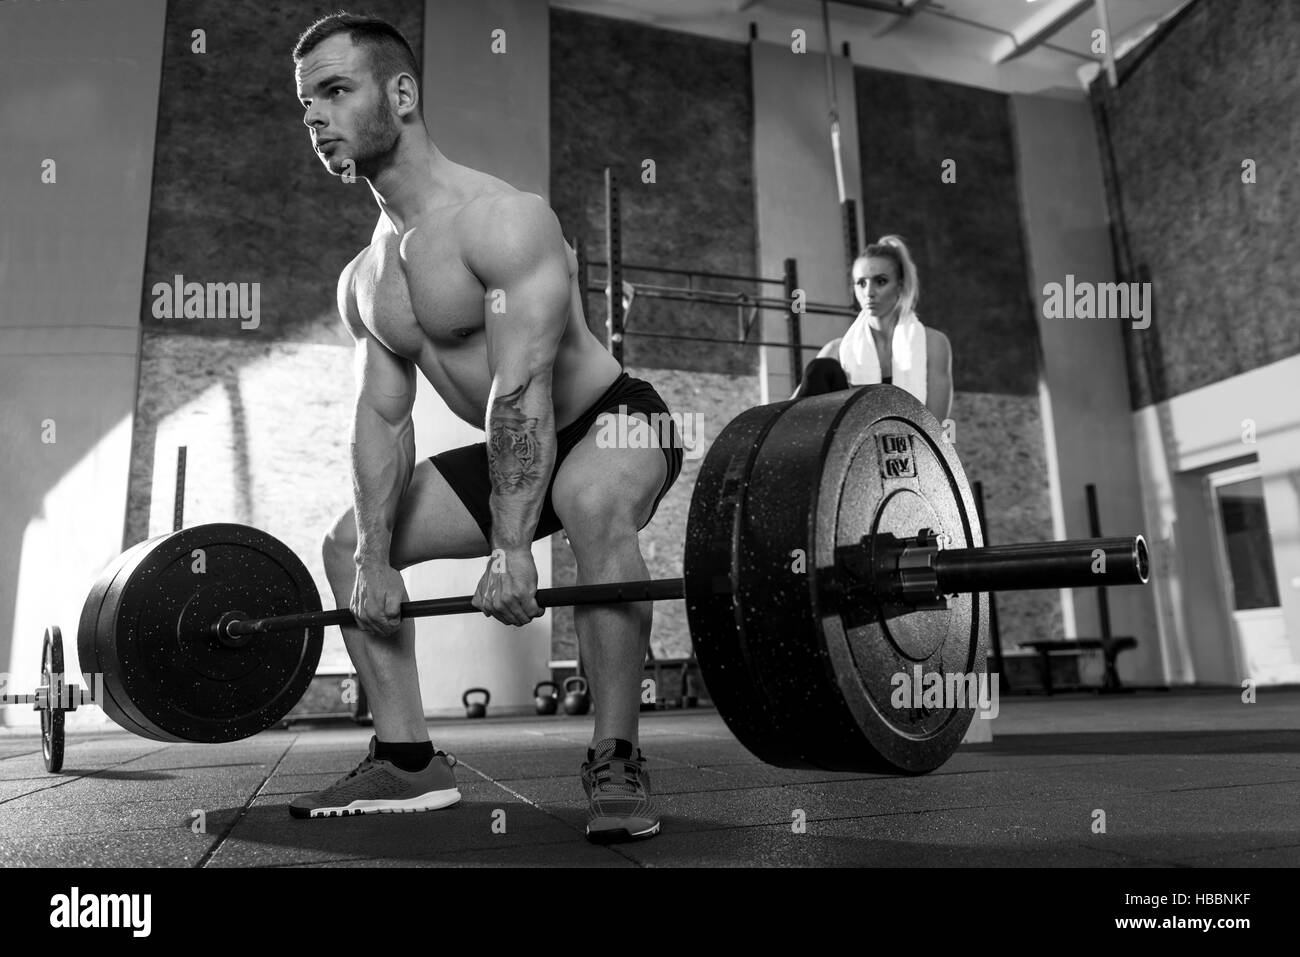 Brutal tattooed man lifting a barbell - Stock Image